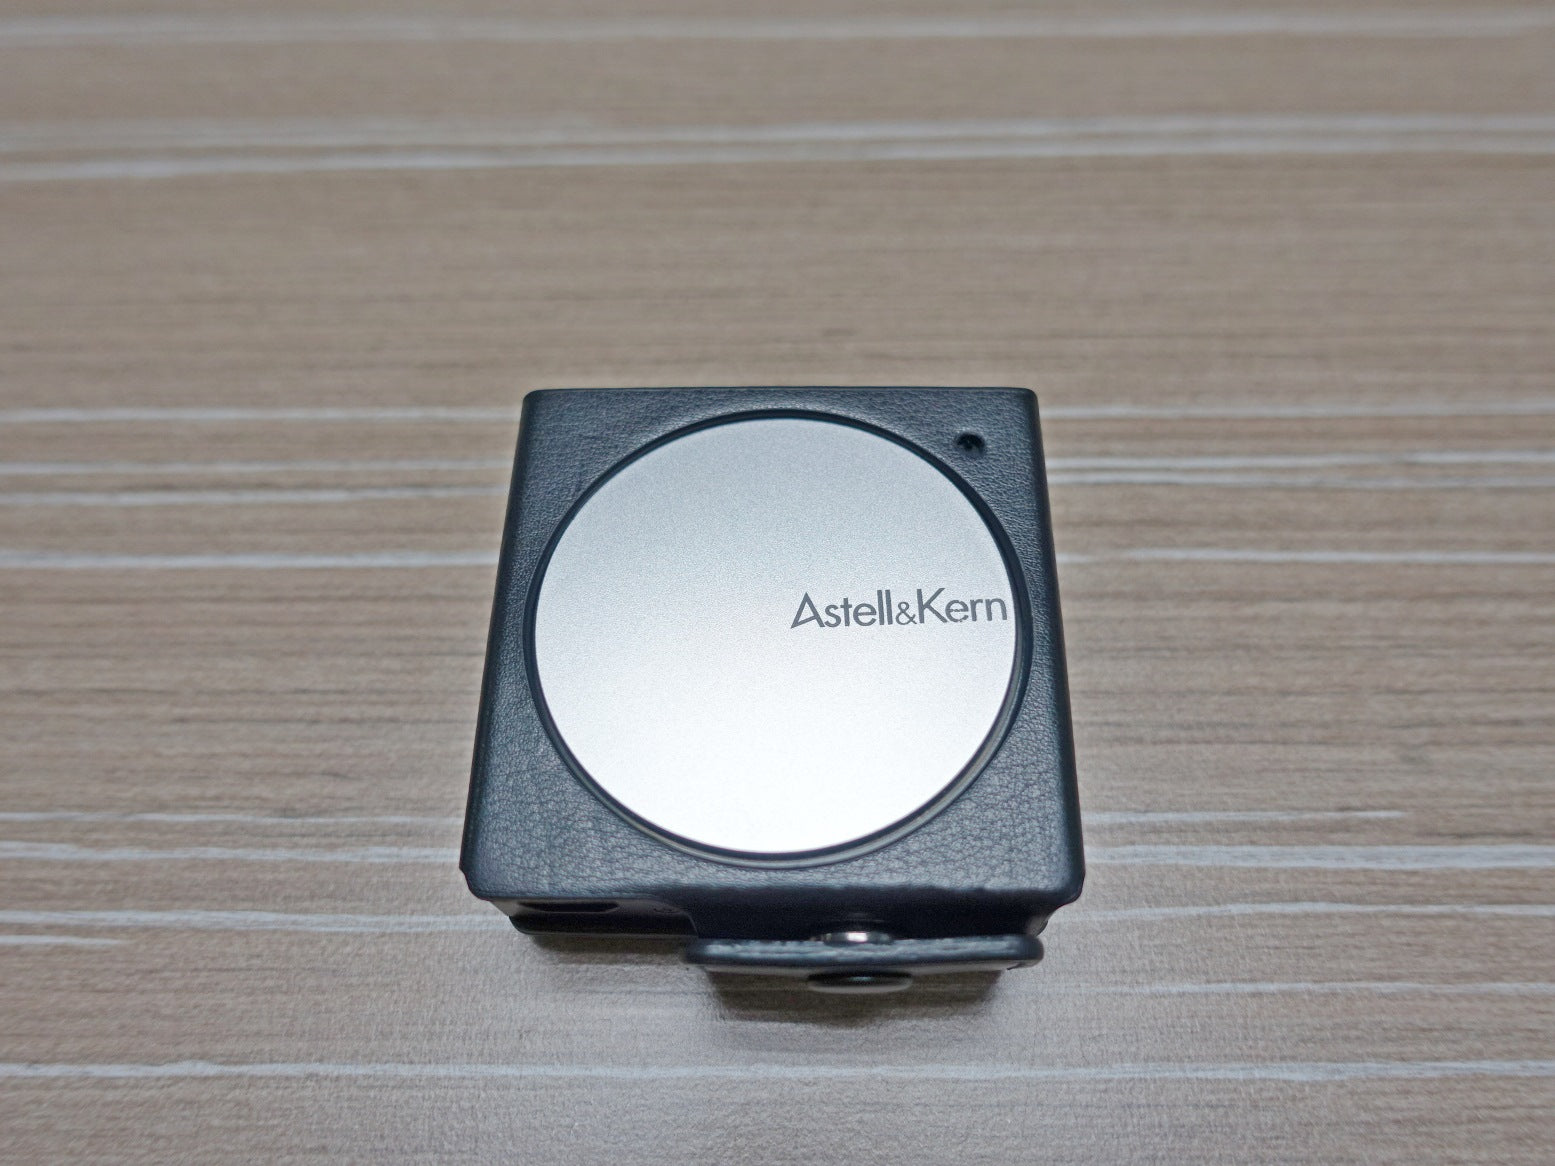 Astell&Kern AK10 Demo (SS15) - Jaben - The Little Headphone Store